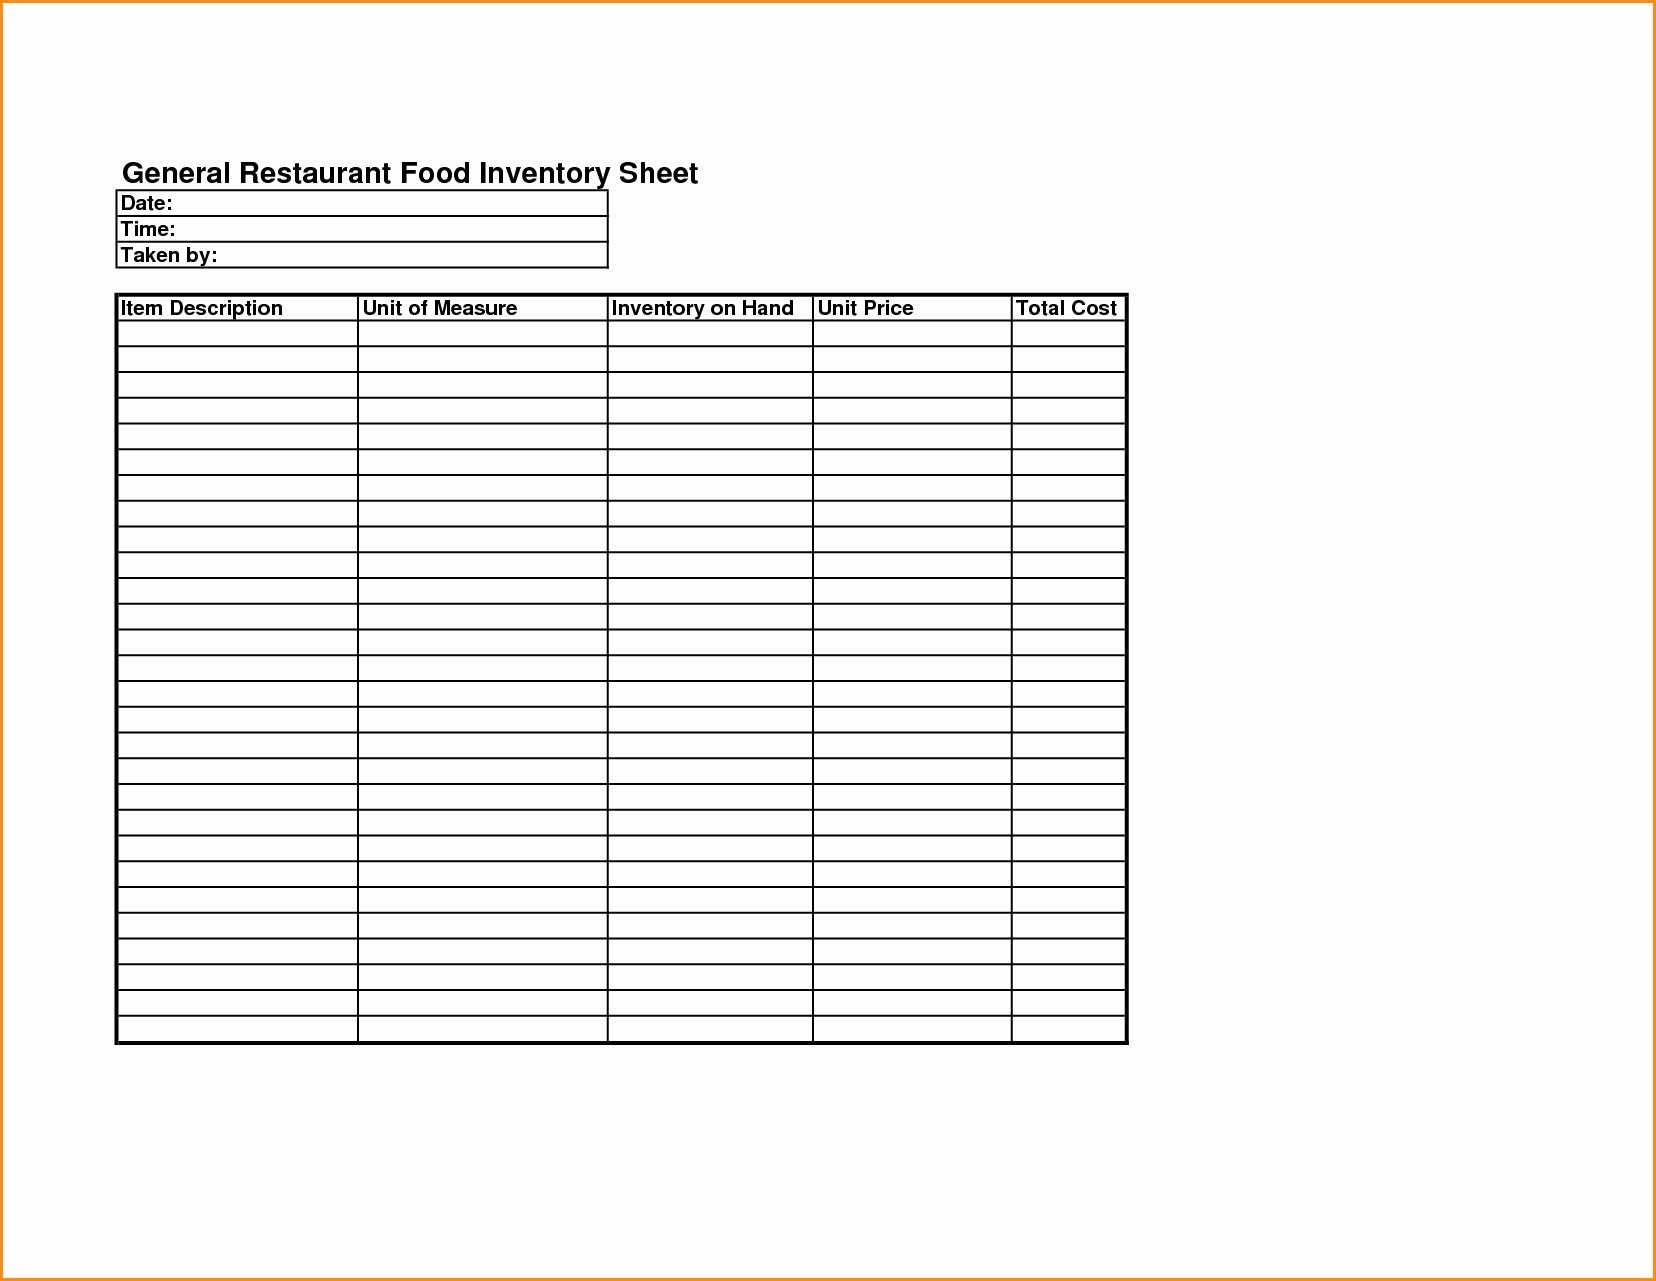 Home Food Inventory Spreadsheet Spreadsheet Downloa Home Food Inventory Spreadsheet